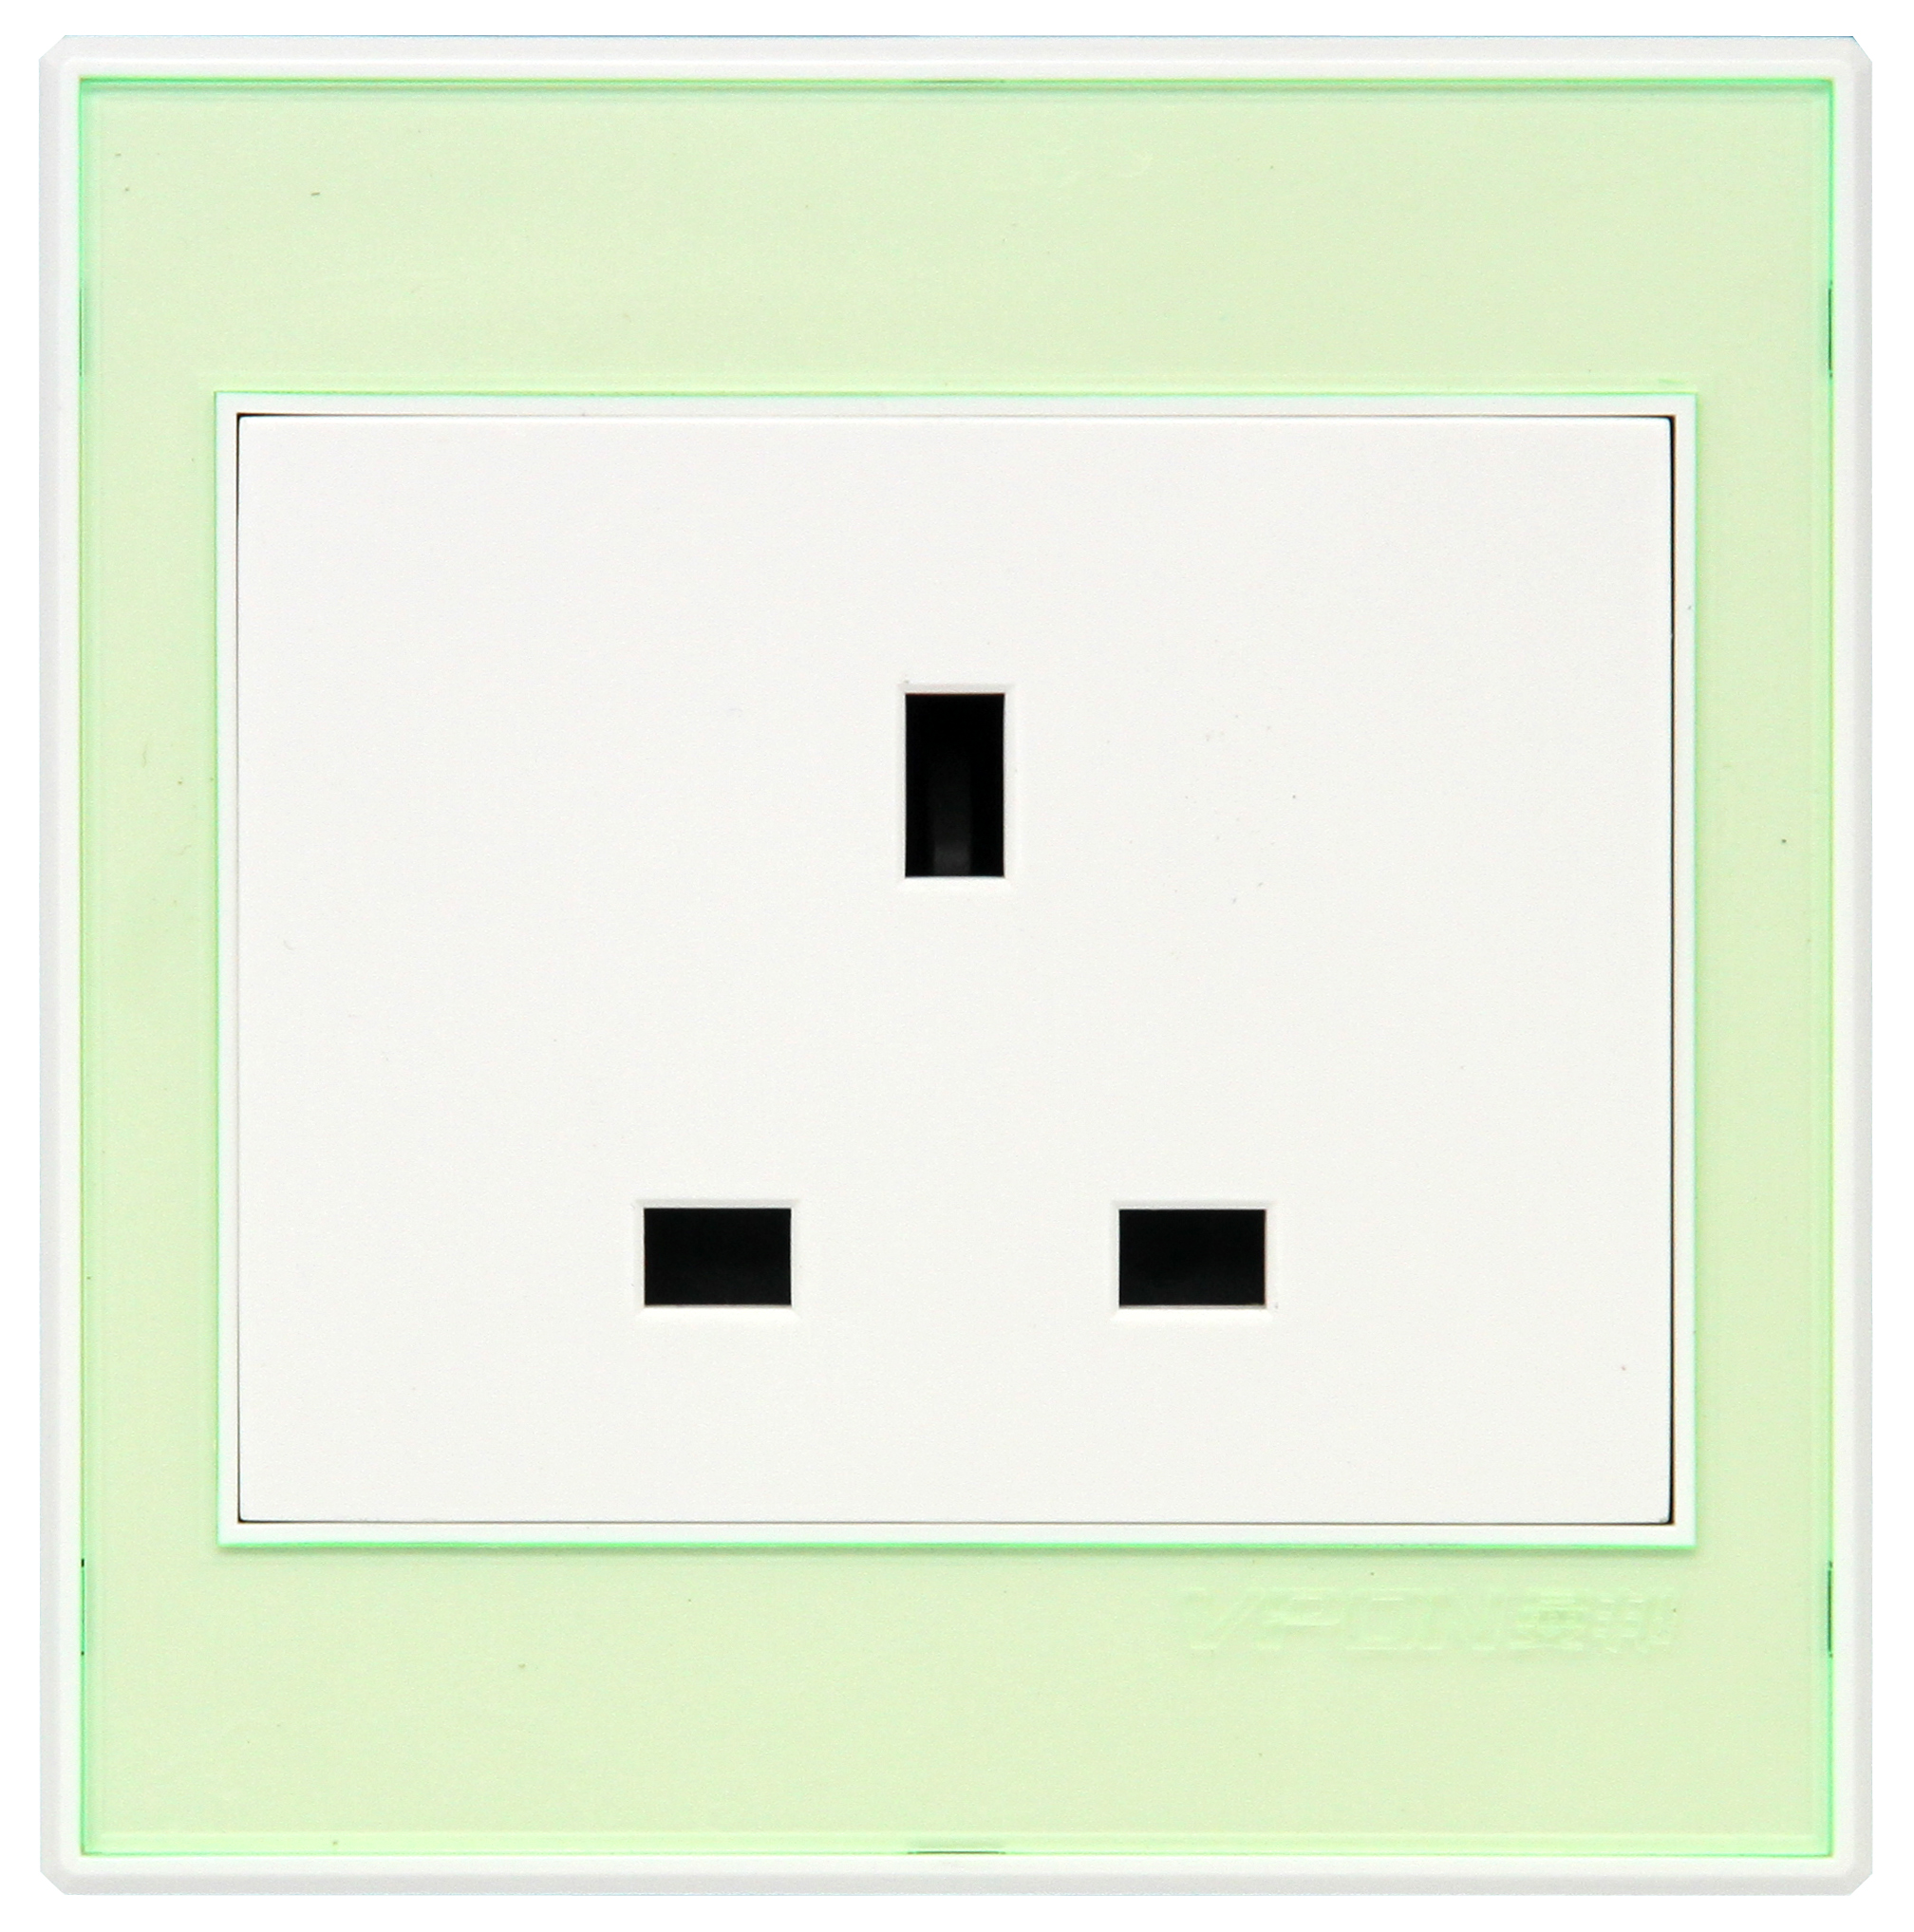 13A Wall socket